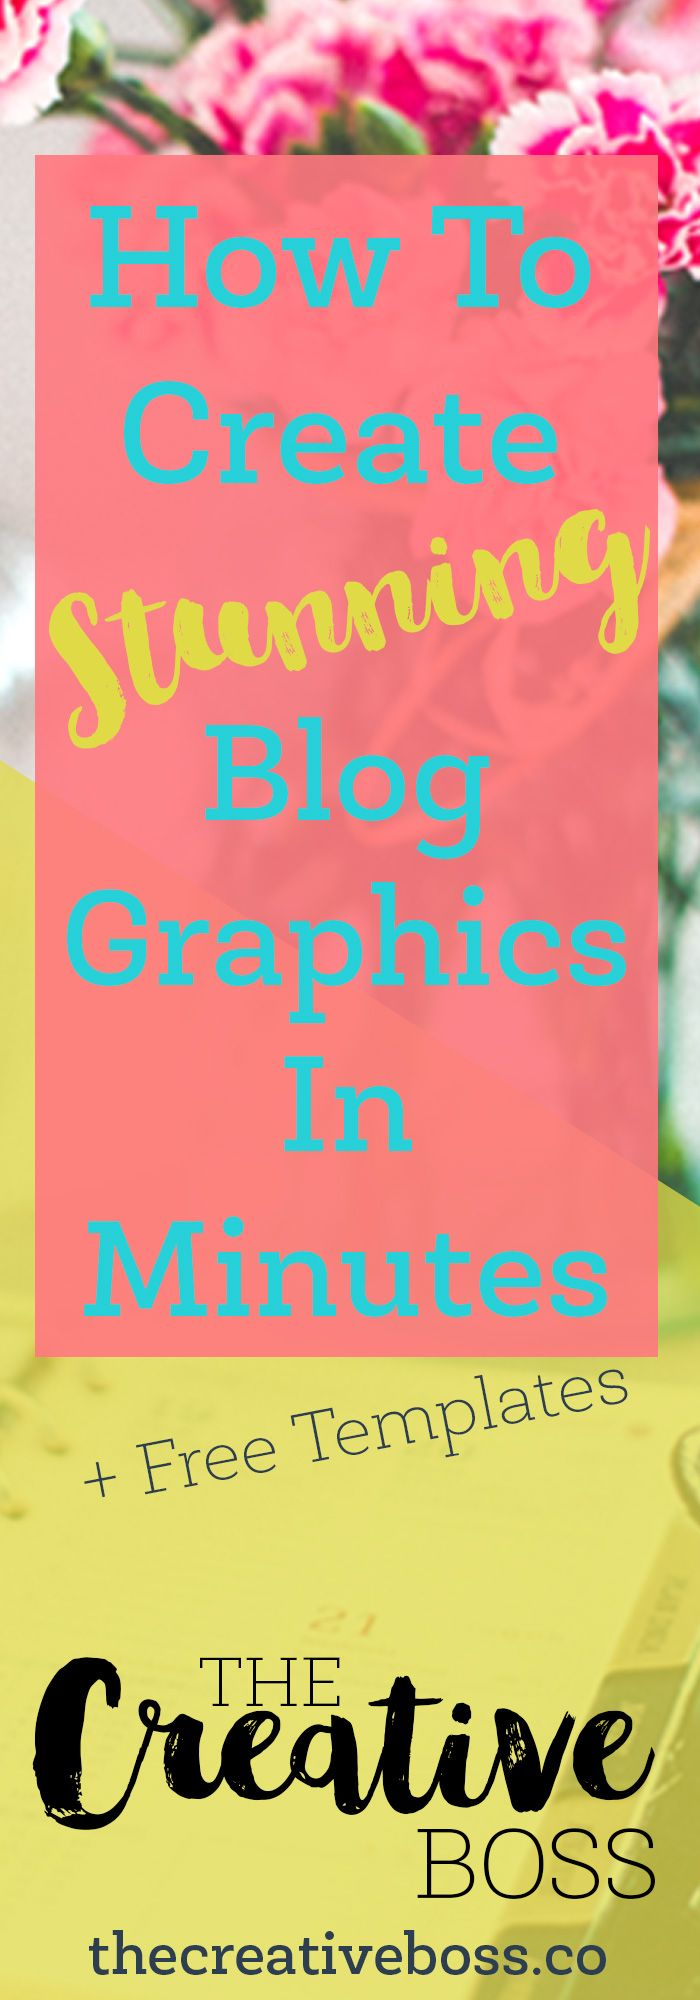 How To Create Stunning Blog Graphics In Minutes